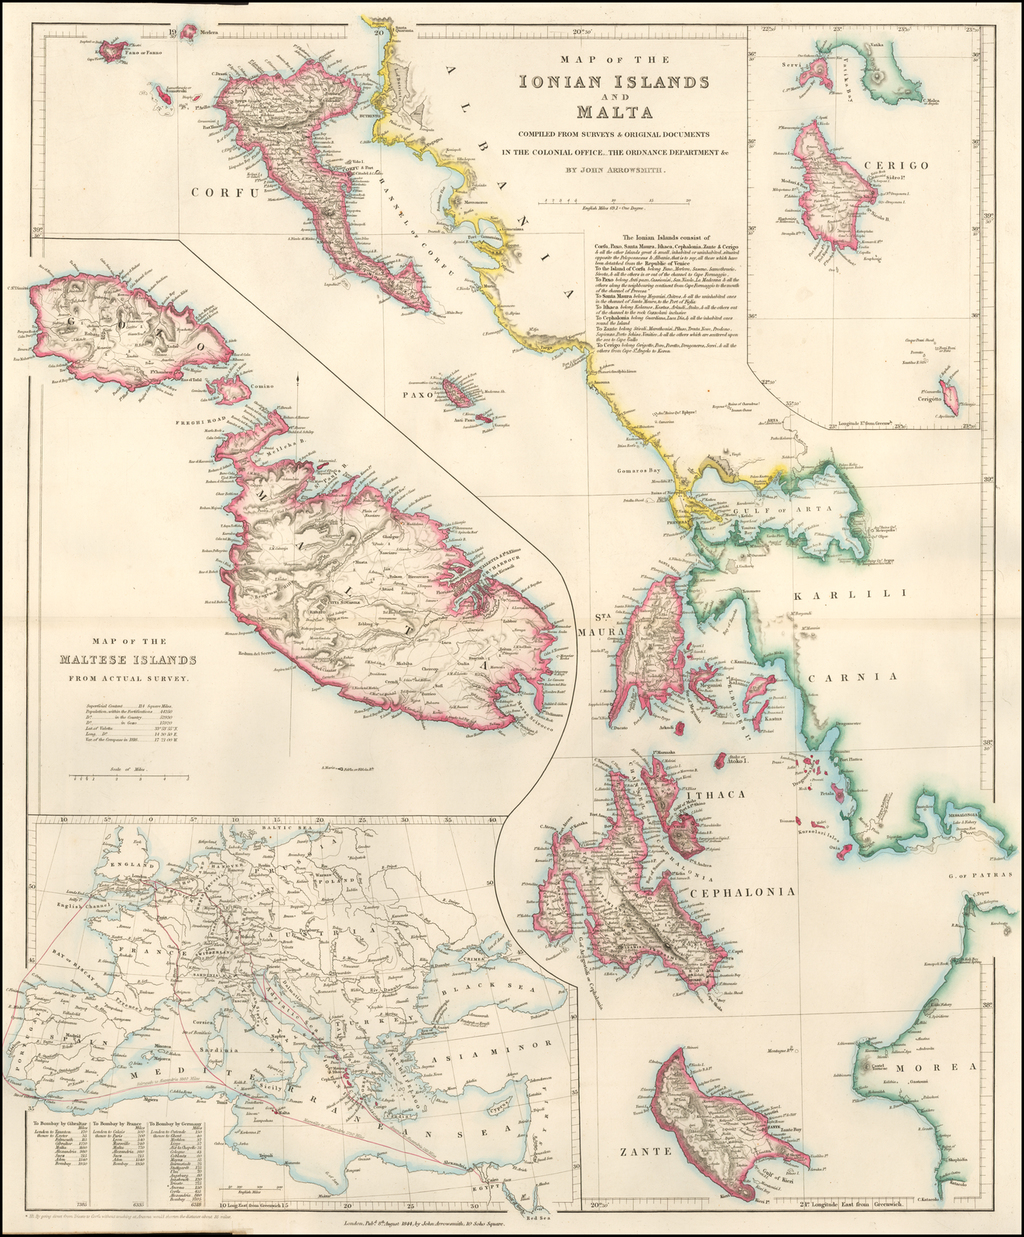 Map of the Ionian Islands and Malta Compiled From Surveys & Original Documents In the Colonial Office, The Ordinance Department. &c. By John Arrowsmith By Edward Stanford